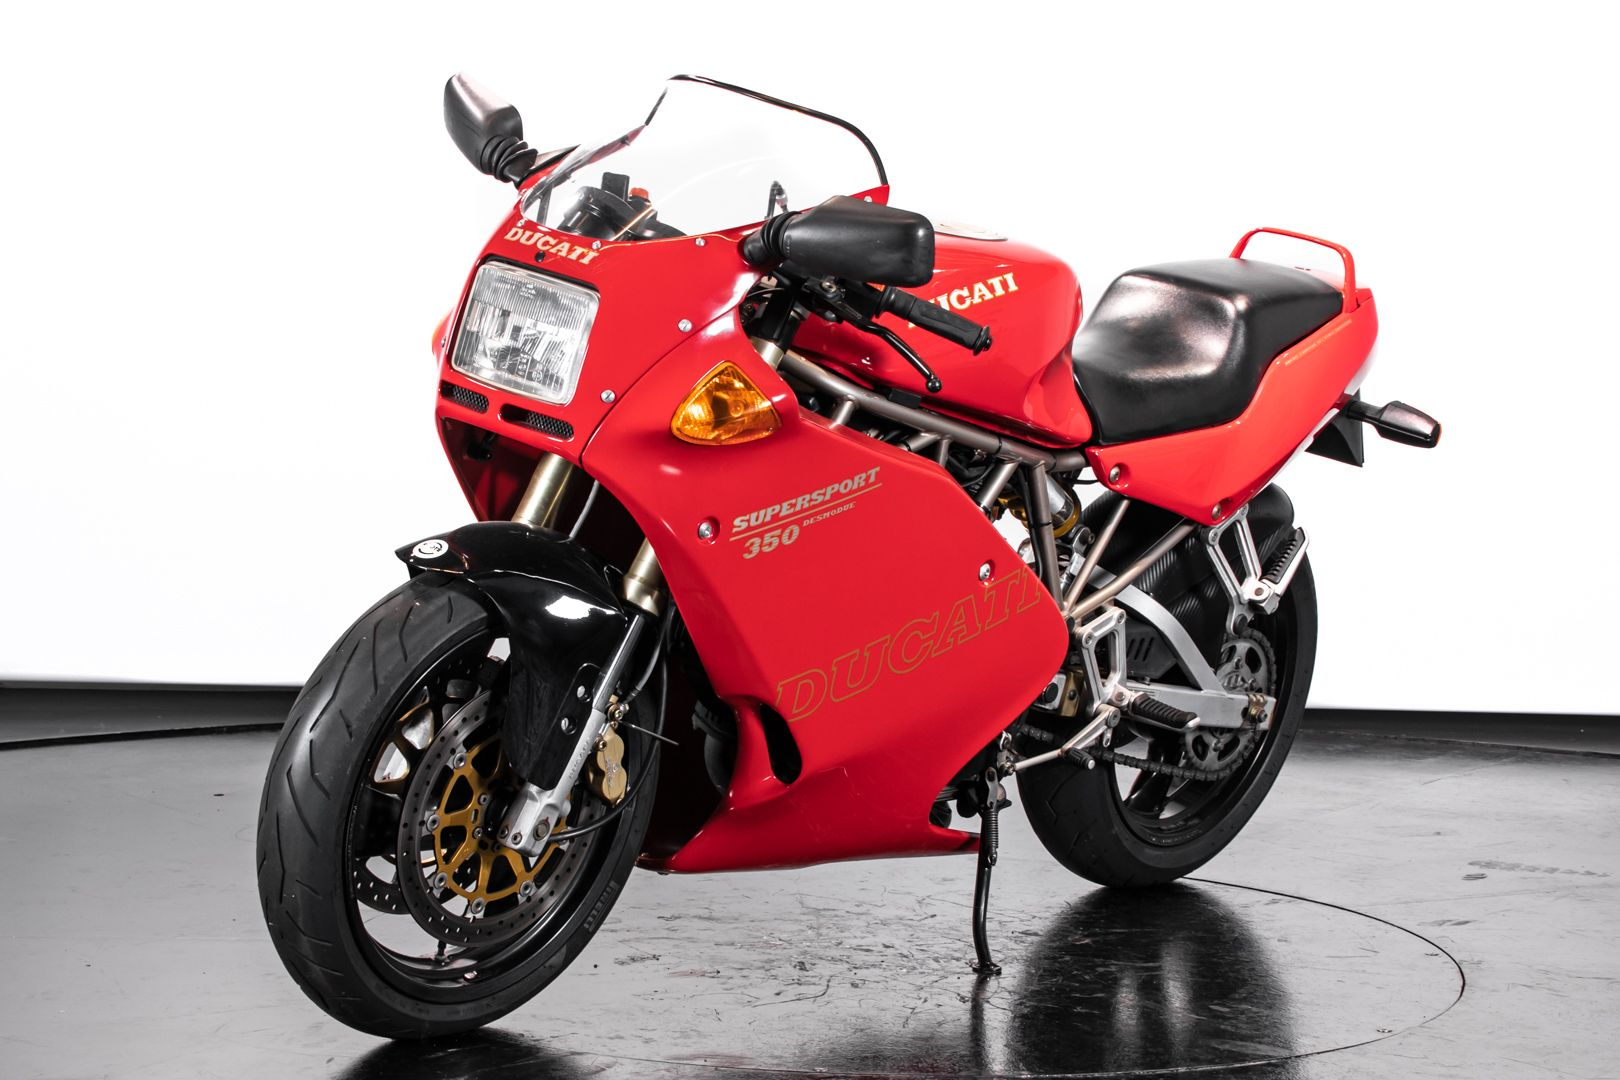 1993 Ducati 350 SS SuperSport 71383